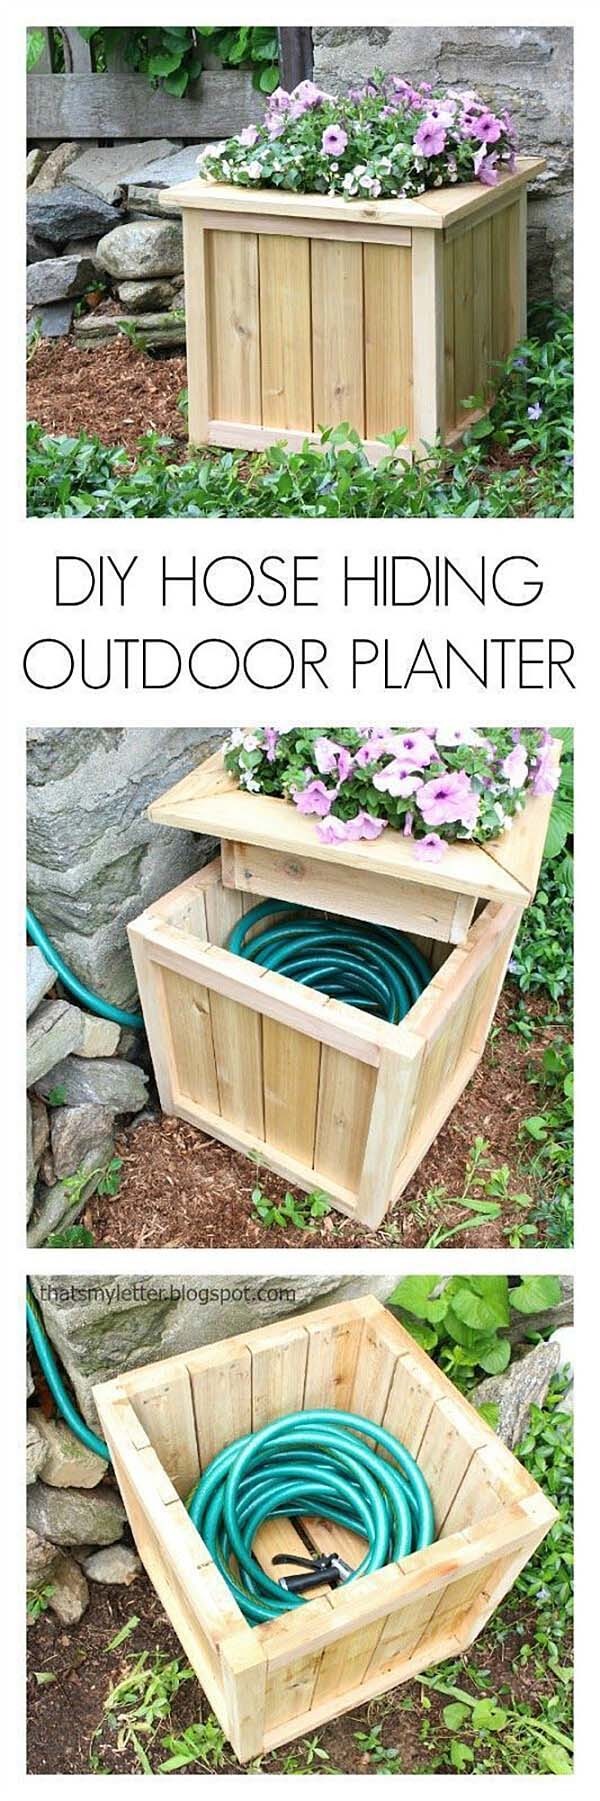 DIY Hose Hiding Outdoor Planter #diy #planter #wood #flower #pallet #decorhomeideas